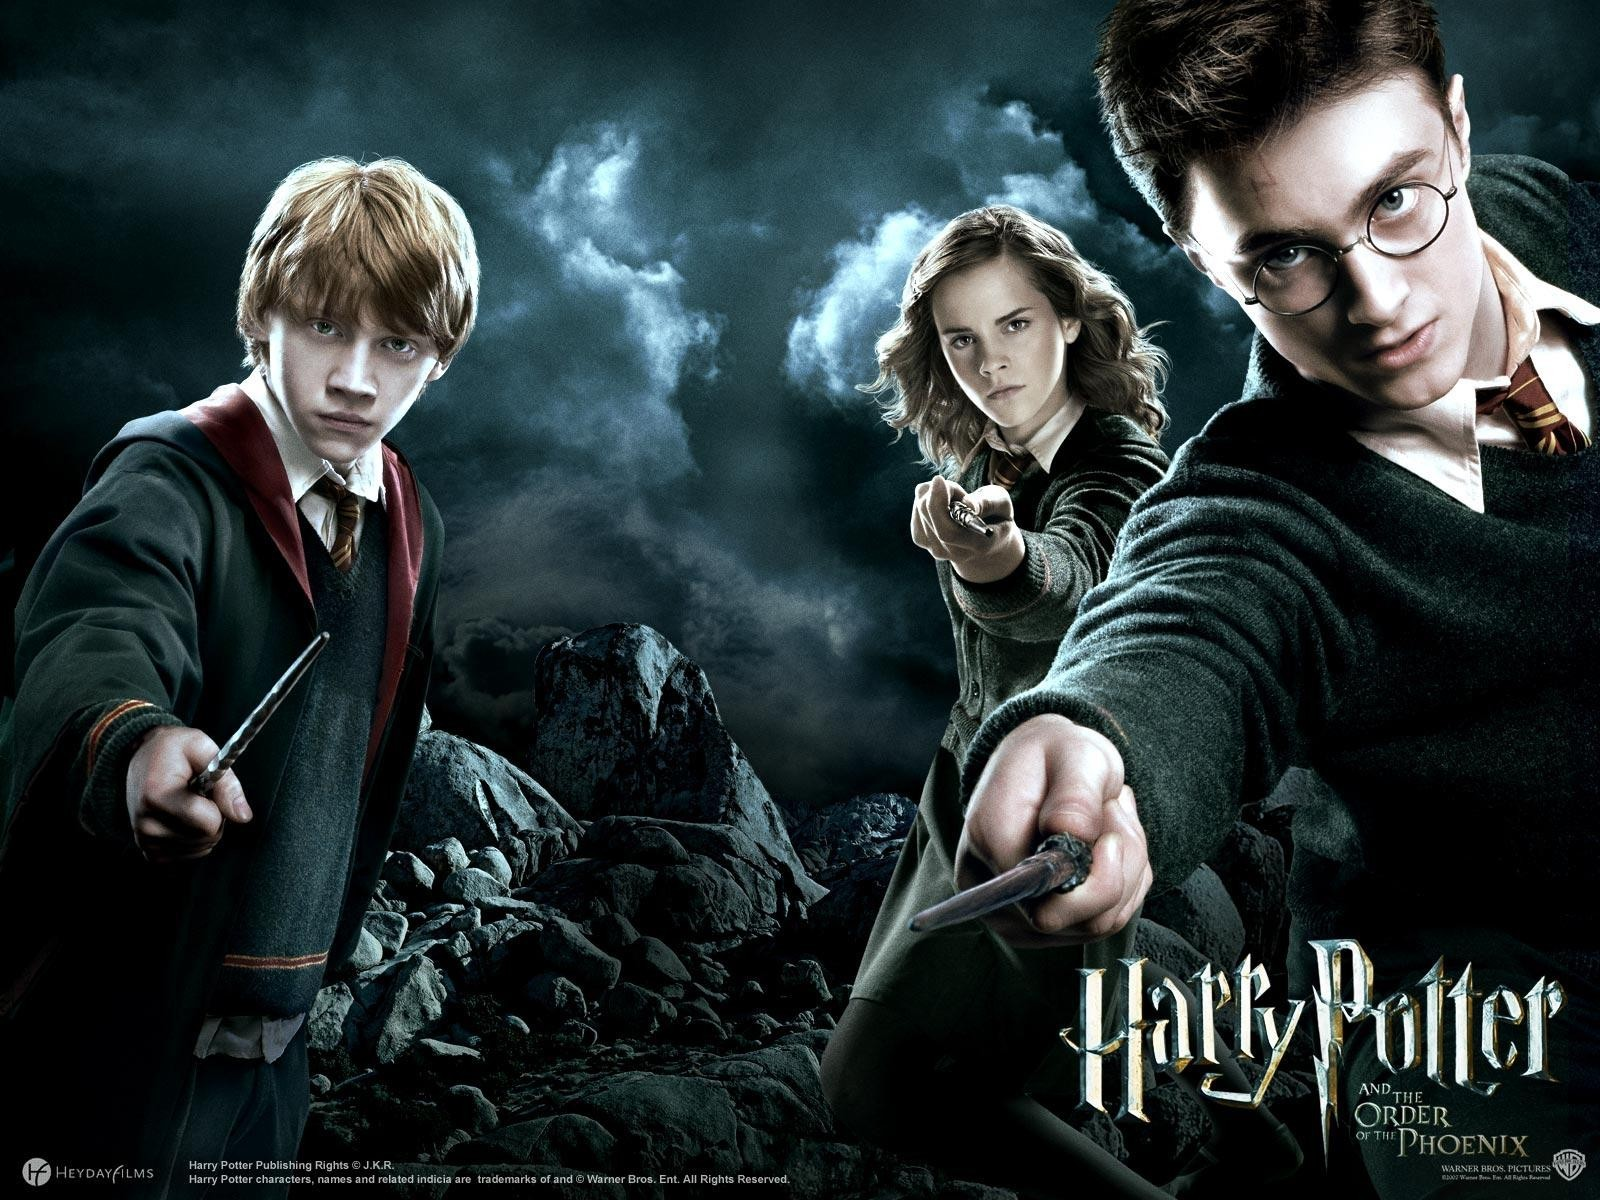 Melyik Harry Potter film a legjobb?